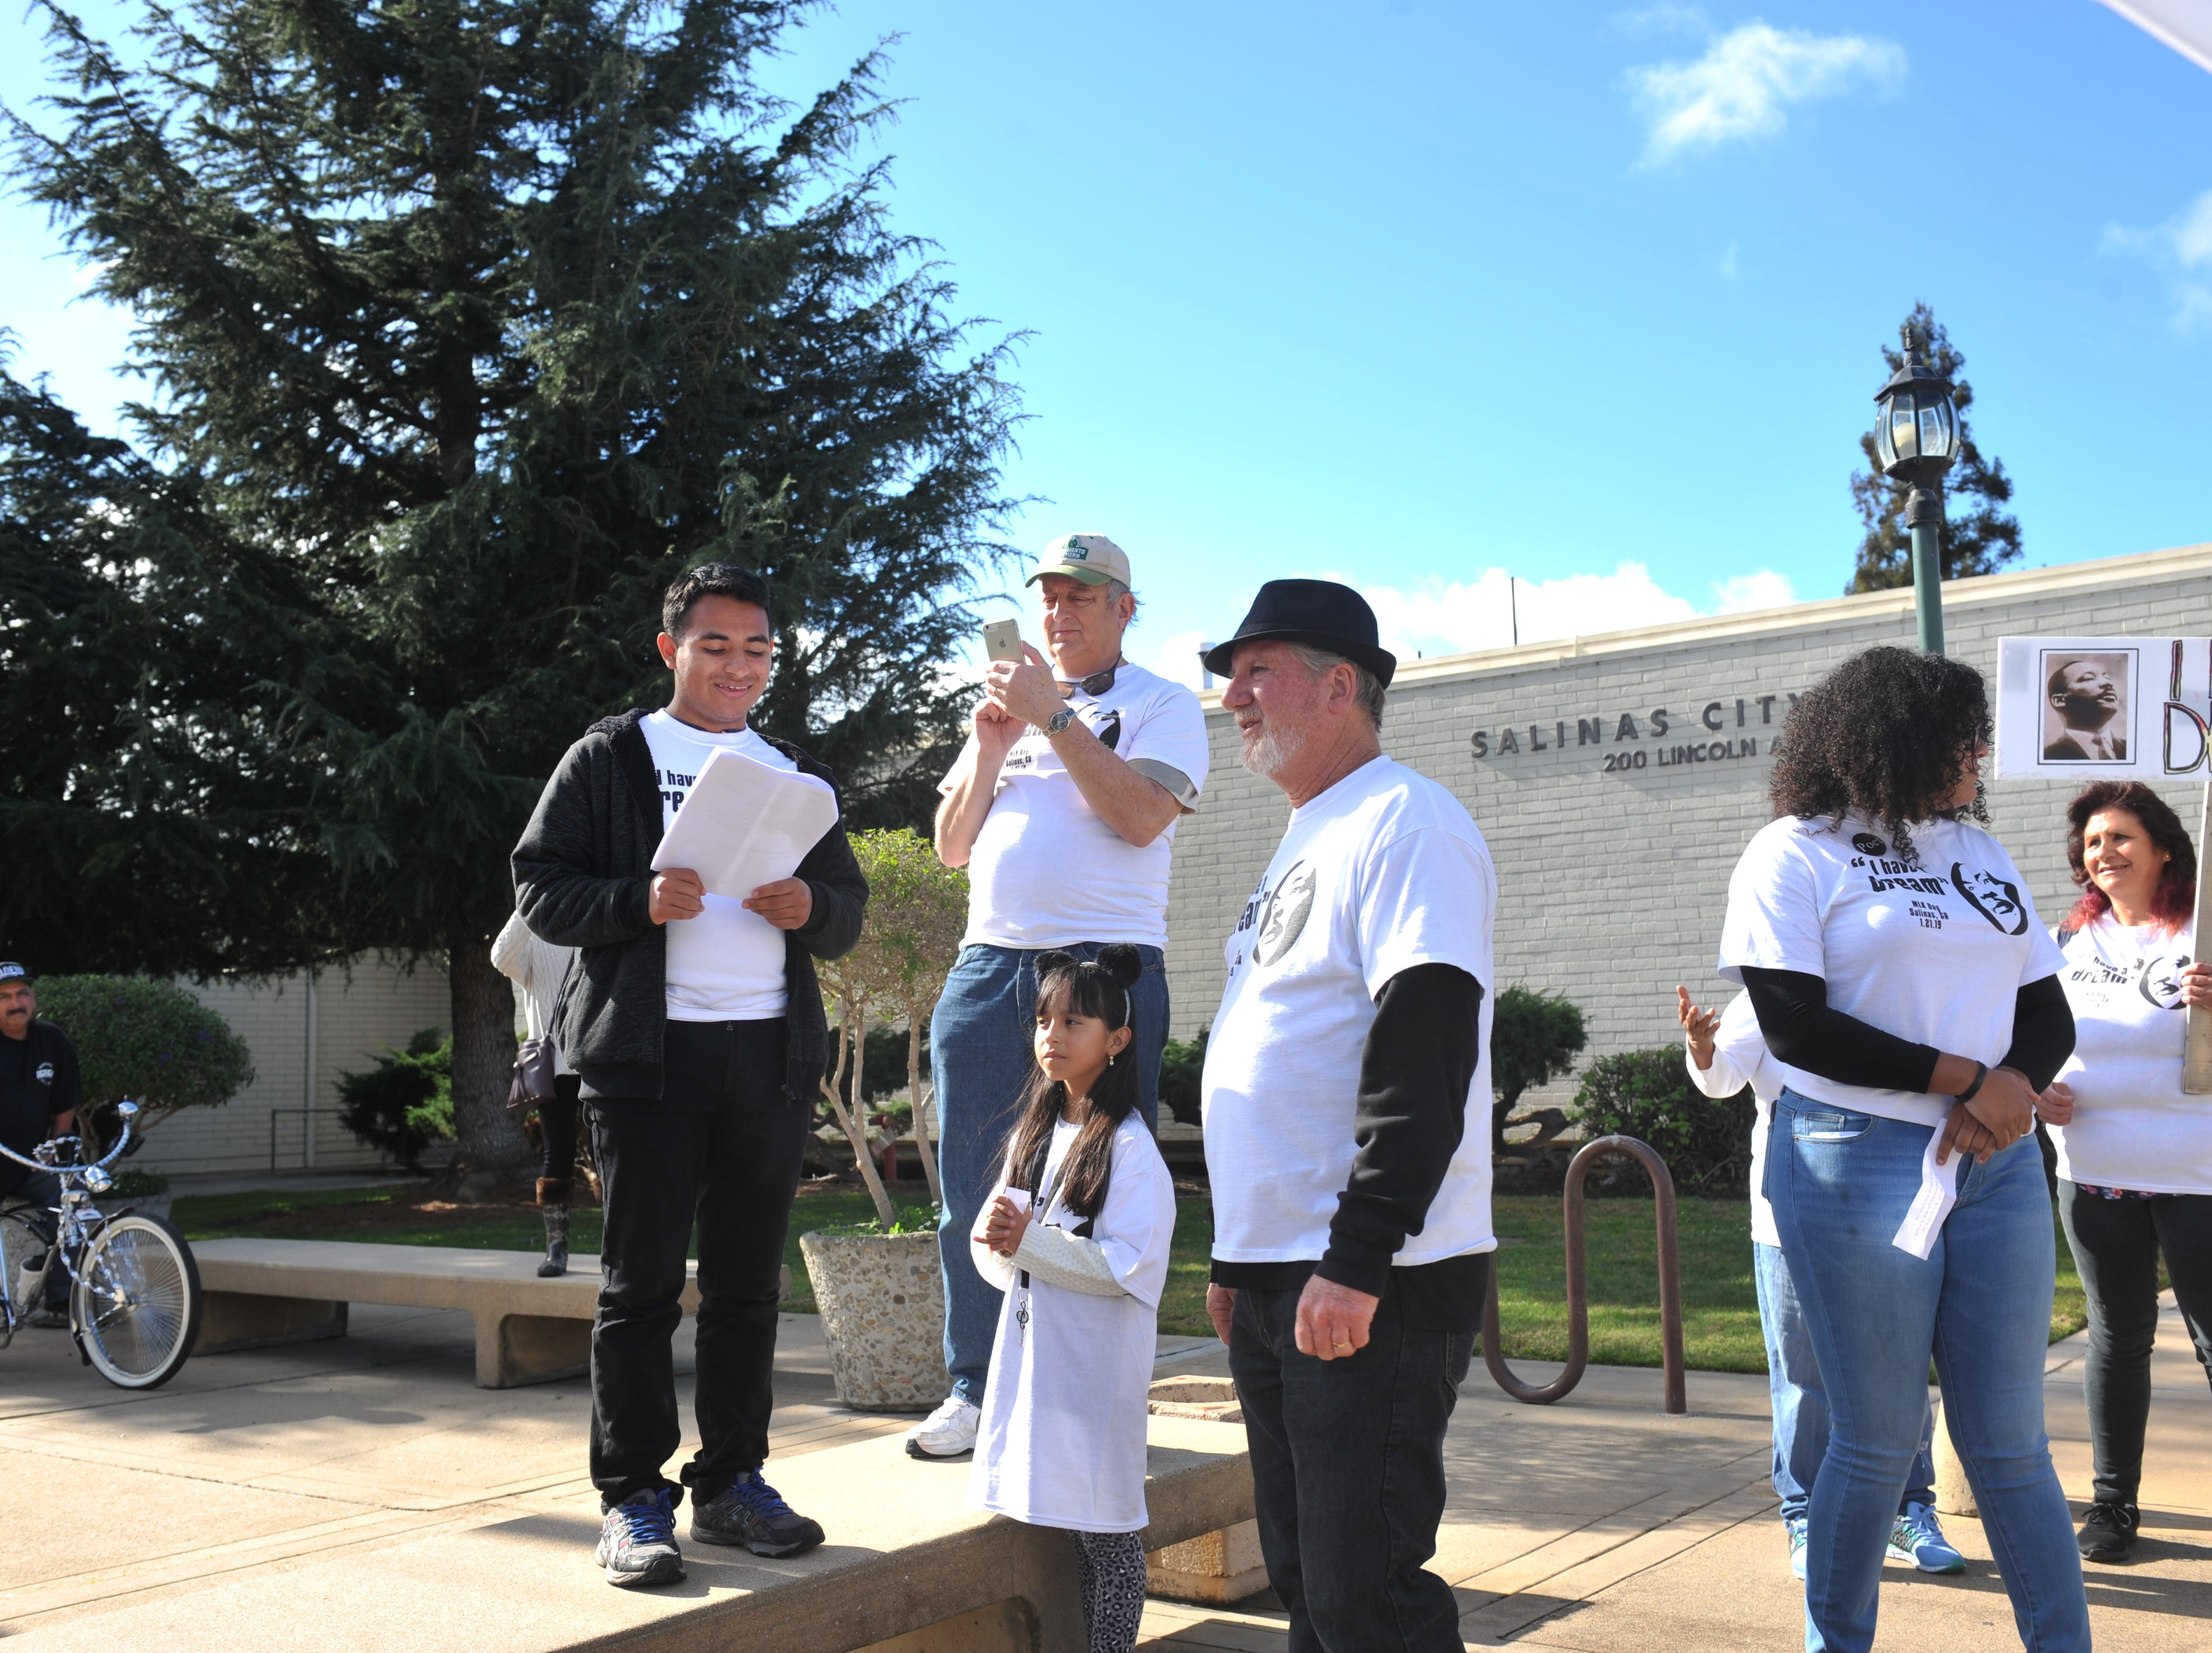 Alisal High School senior Daniel Regalado, far left, translates Martin Luther King Jr. quotes from English to Spanish in front of Salinas City Hall while his sister Gabriela, middle below, and the Rev. Steve Lundin, third from right, listen.